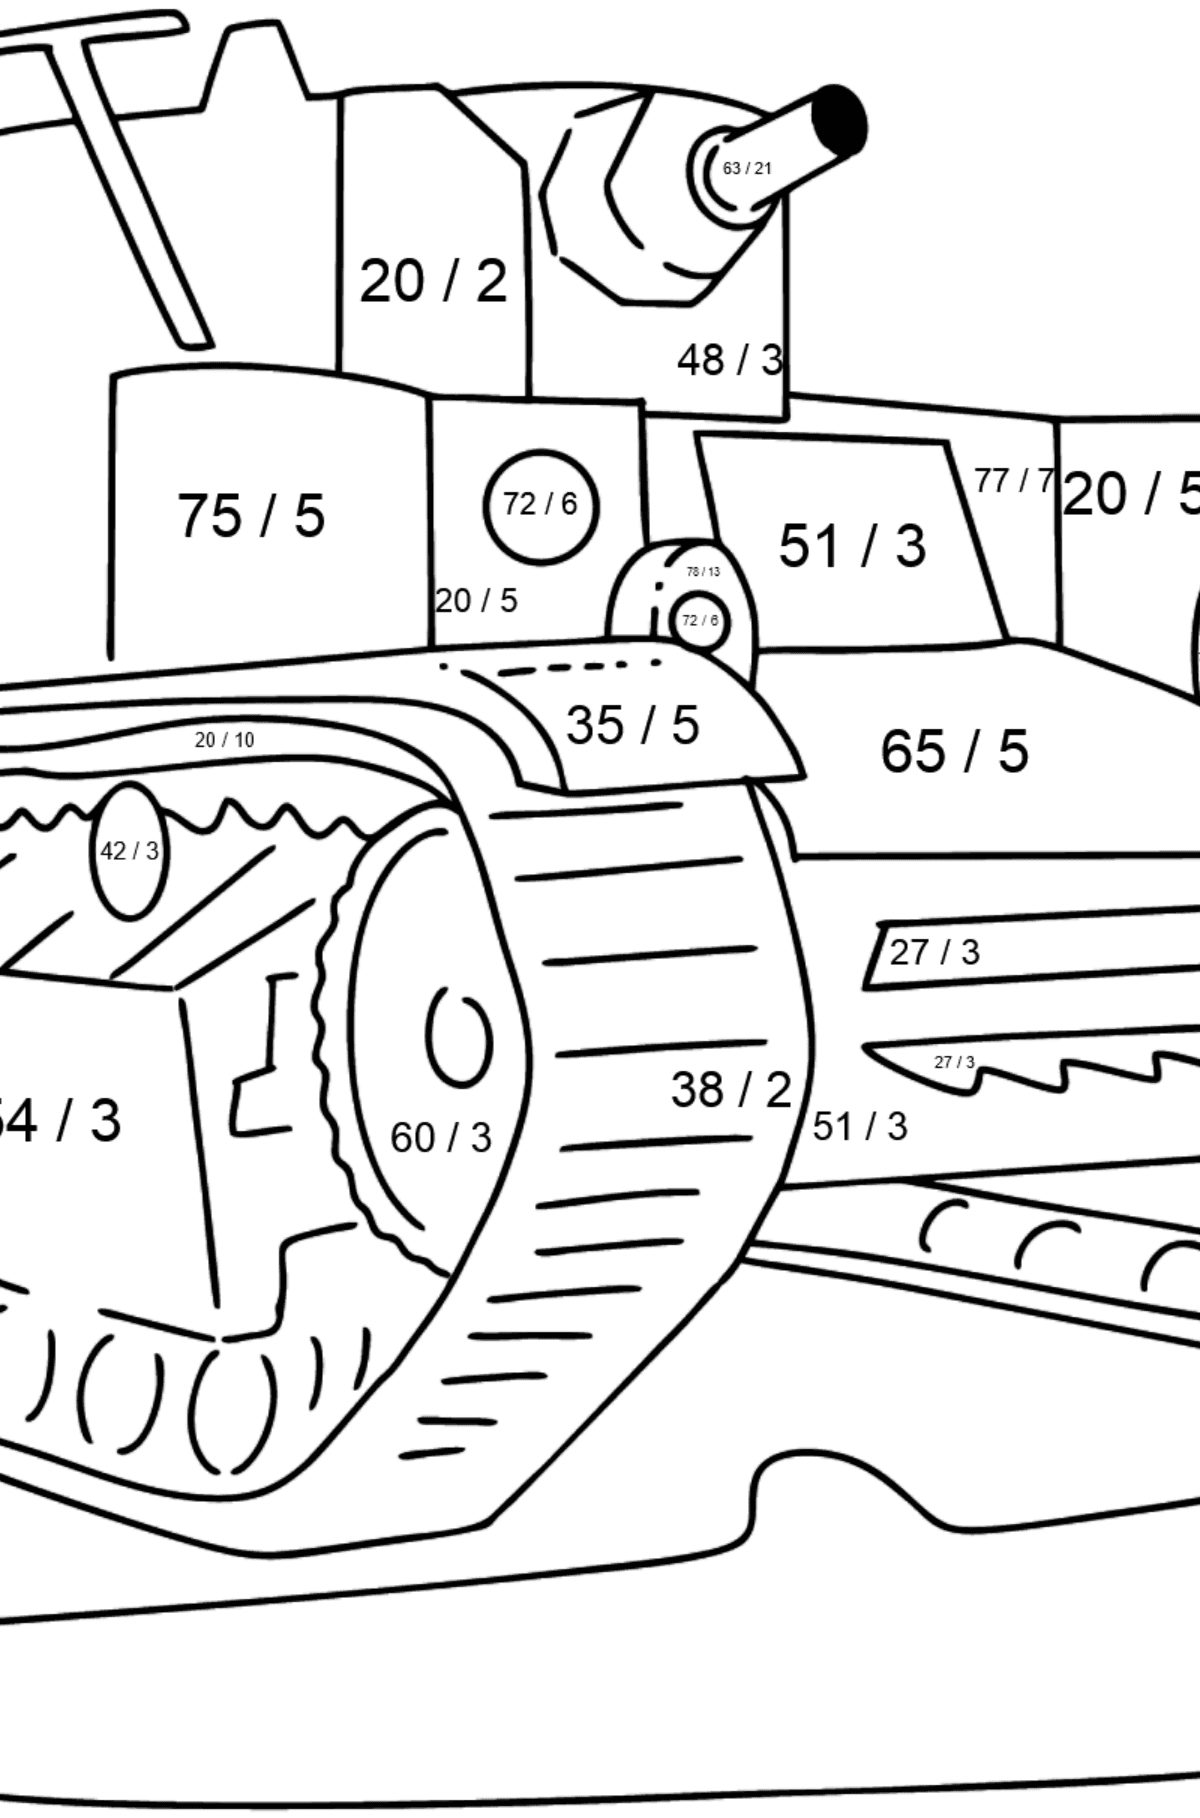 Tank T 28 coloring page - Math Coloring - Division for Kids